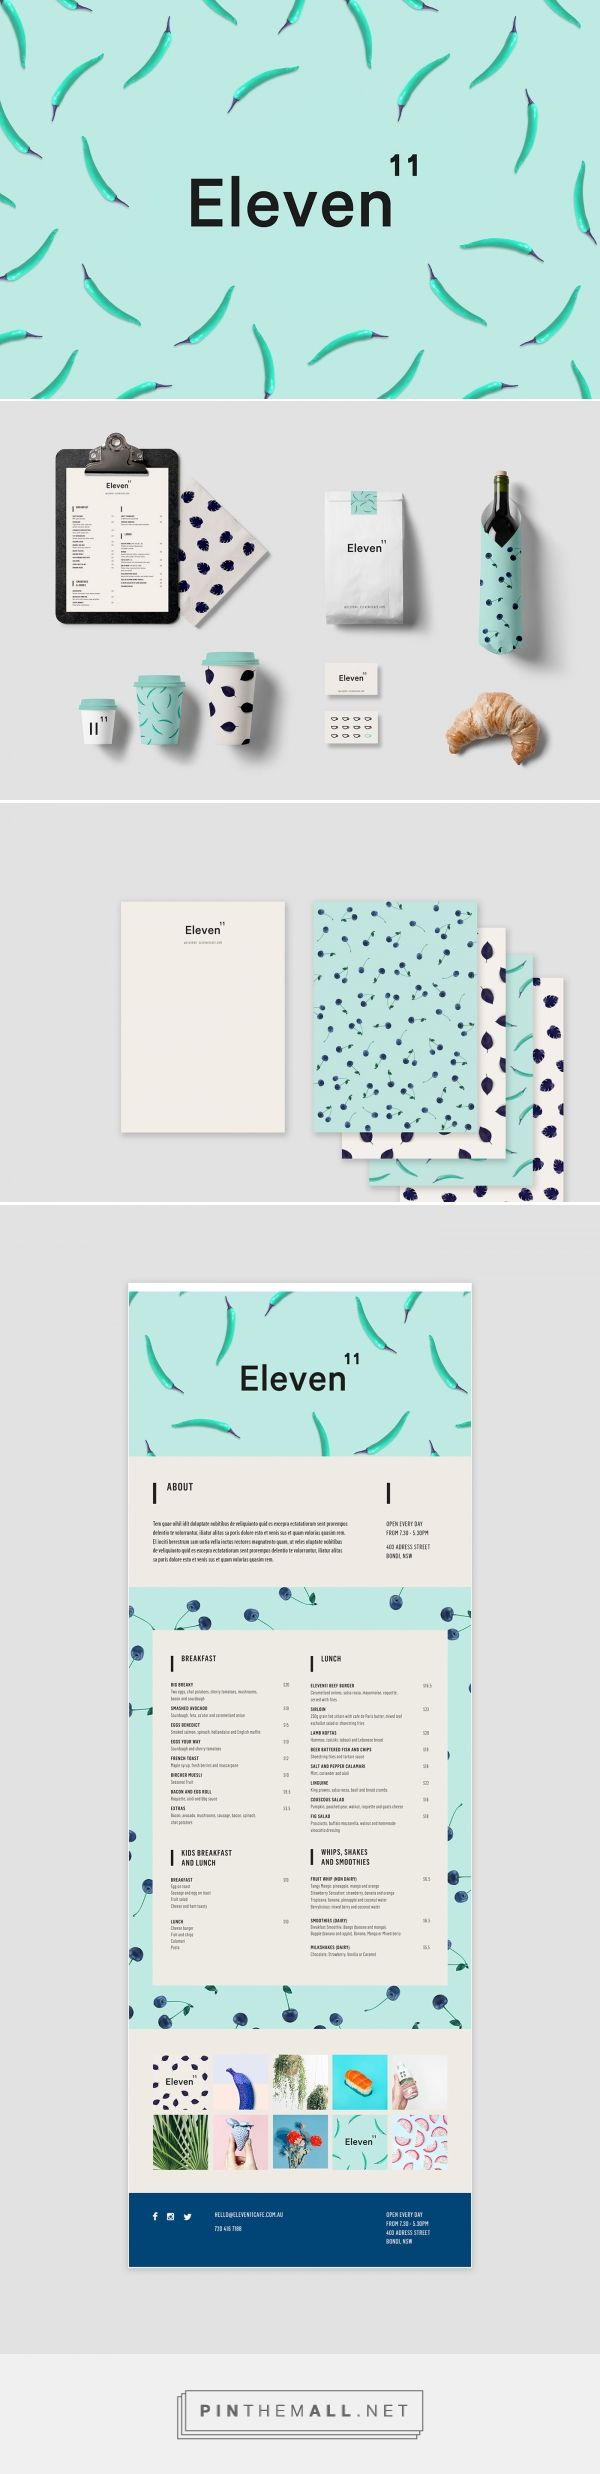 Eleven11 Branding by Soon Co.                                                                                                                                                                                 Más